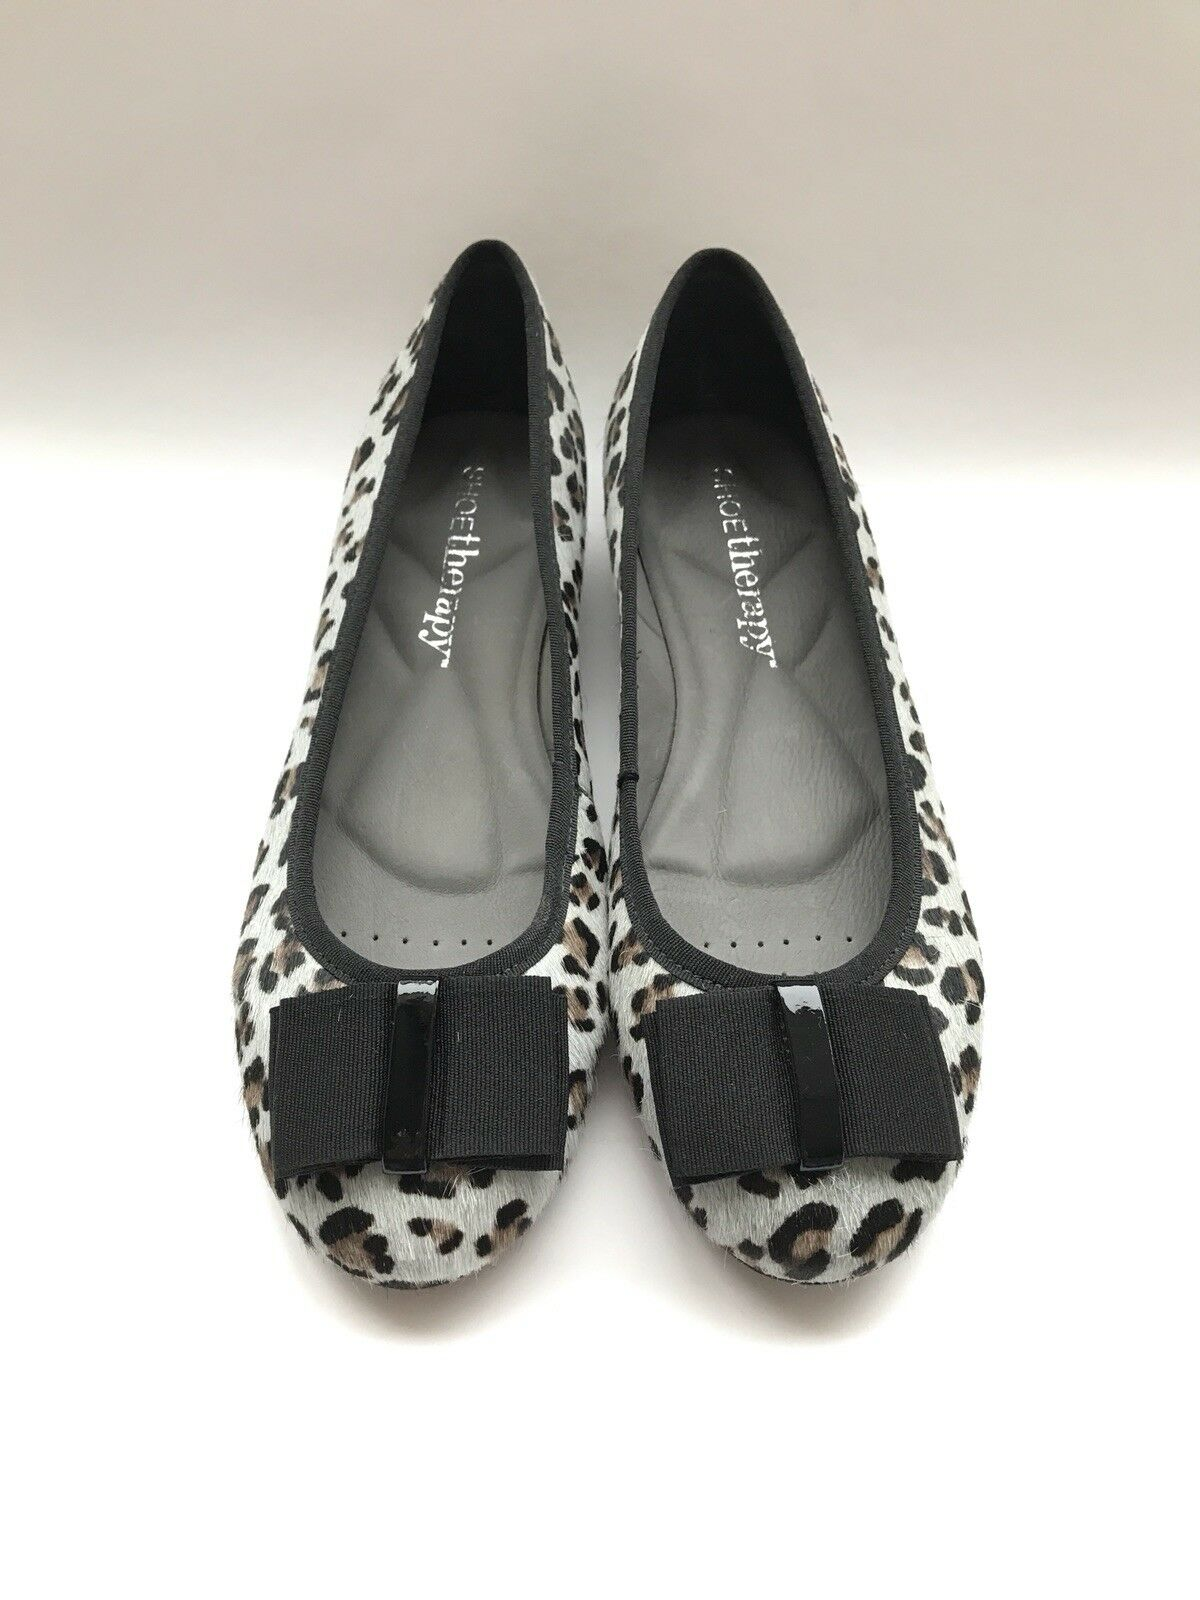 shoesTherapy Leopard Ballet Pump, Horsehair, size 6UK= 39EUR, bluee and black